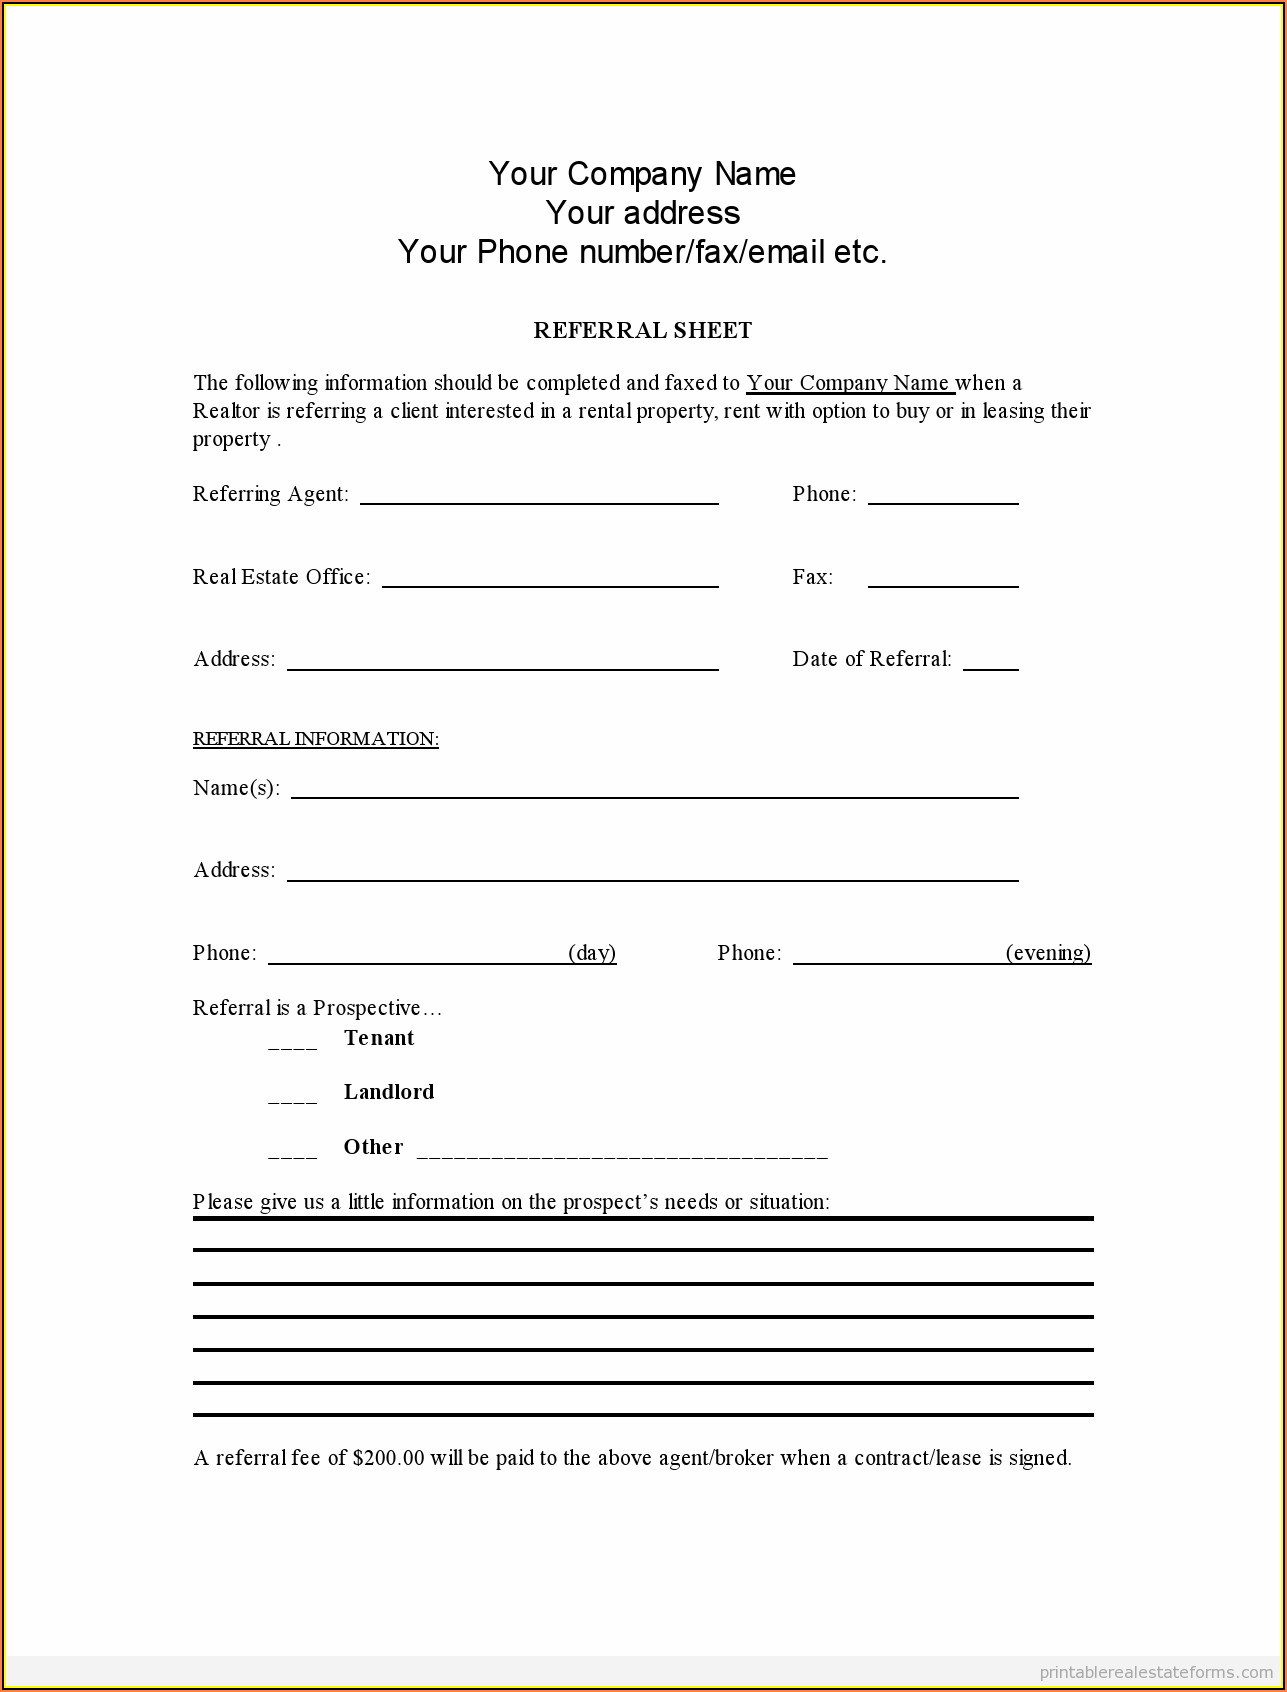 How To Fill Out A Real Estate Agent Referral Form